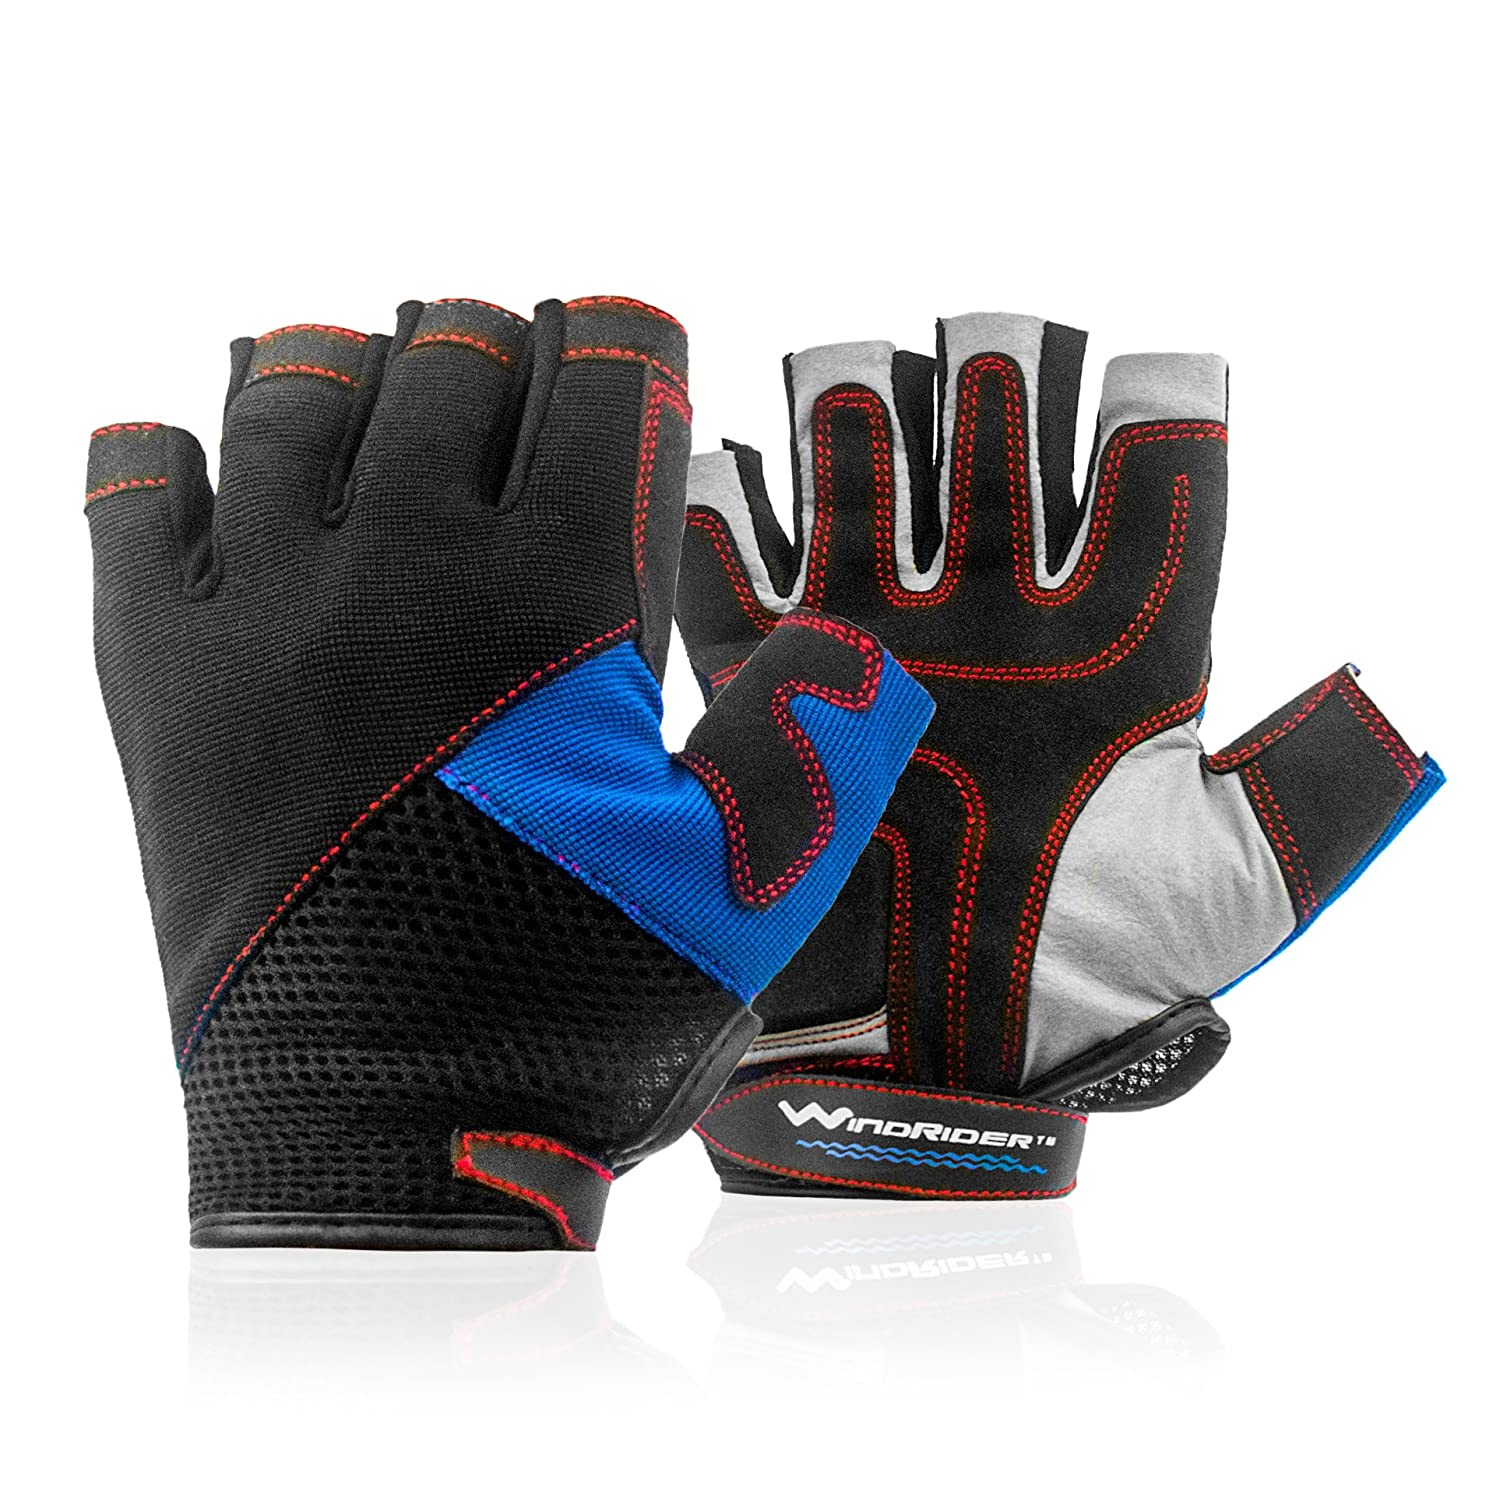 WindRider 3-4 Finger Performance Sailing Gloves